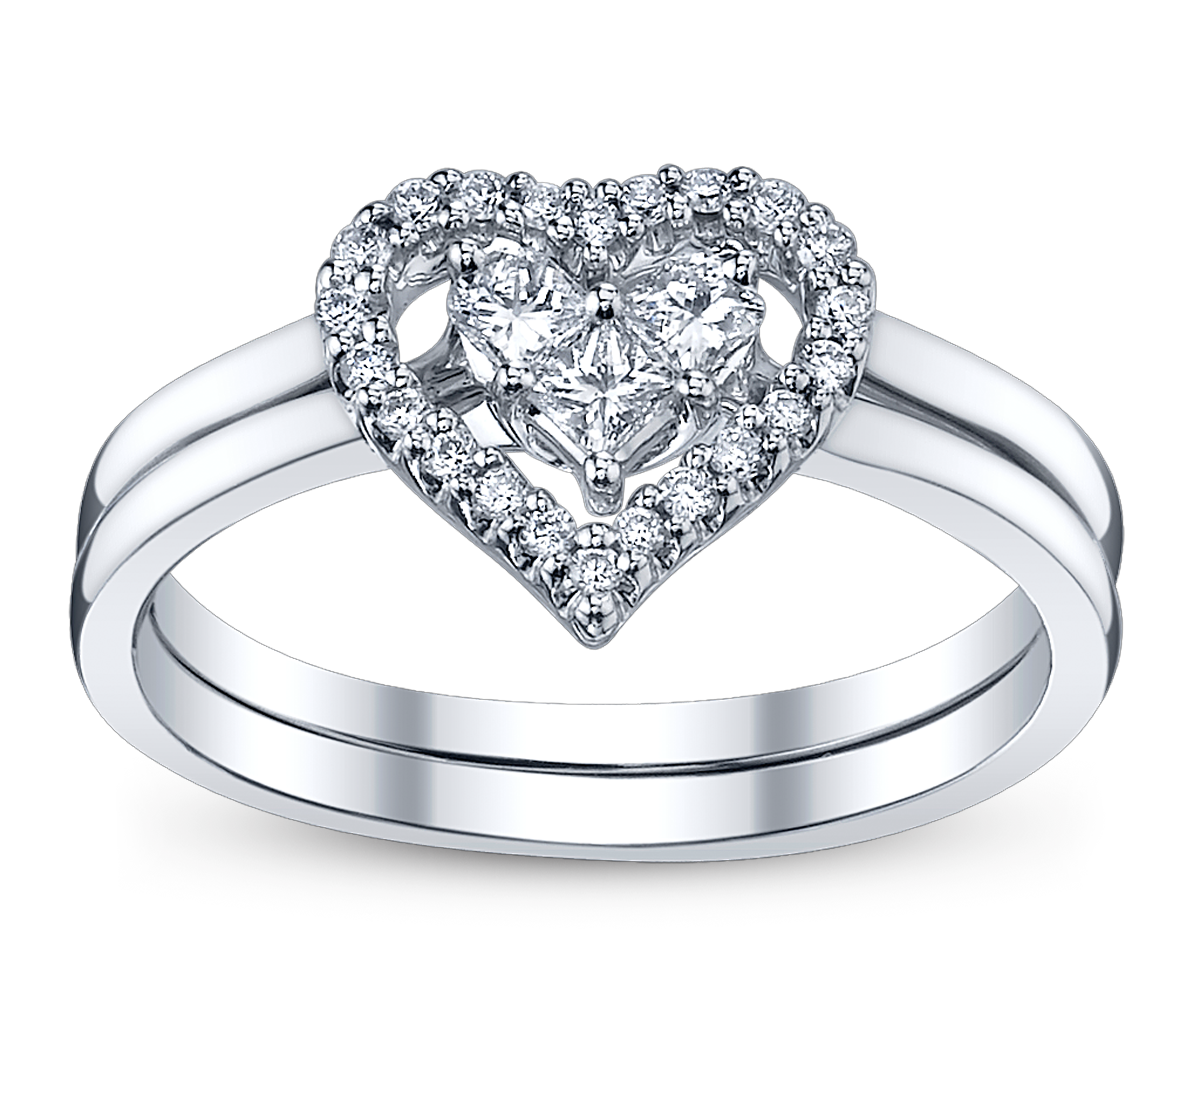 Diamond Heart Wedding Ring Set From Robbins Brothers Sku 0374029